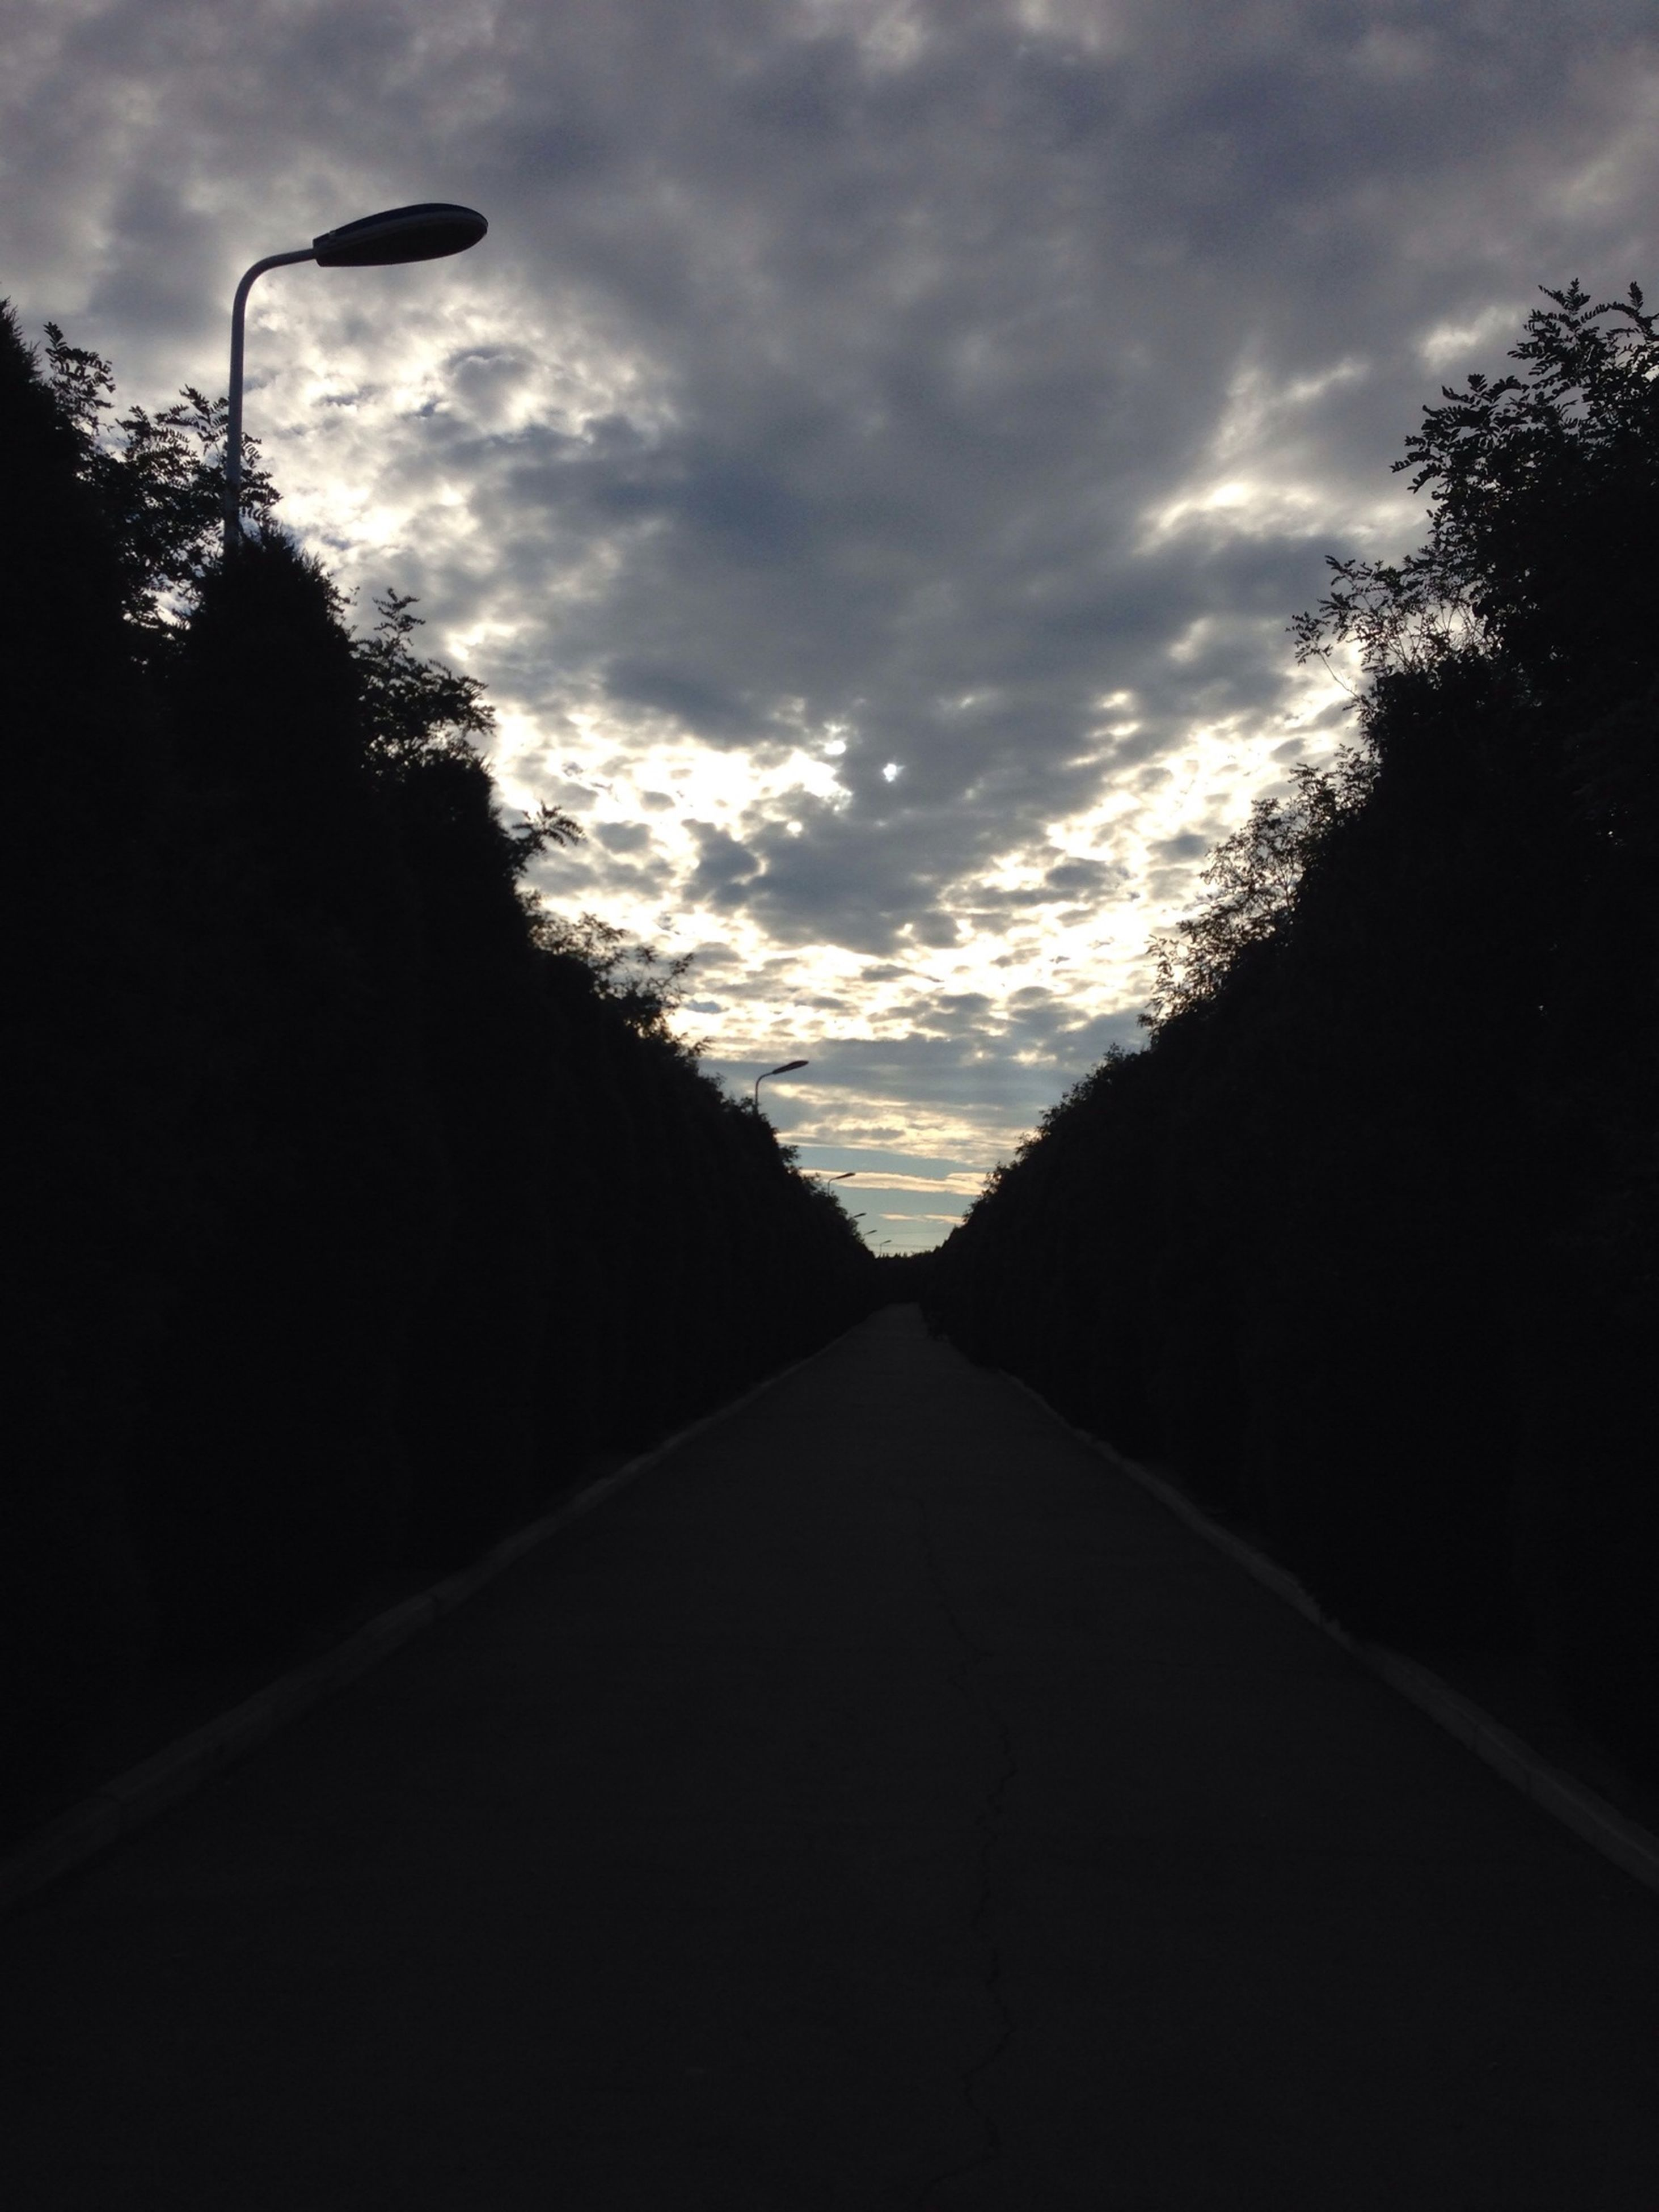 the way forward, sky, tree, diminishing perspective, road, cloud - sky, silhouette, vanishing point, tranquility, tranquil scene, transportation, cloud, cloudy, sunset, nature, empty, country road, beauty in nature, empty road, scenics